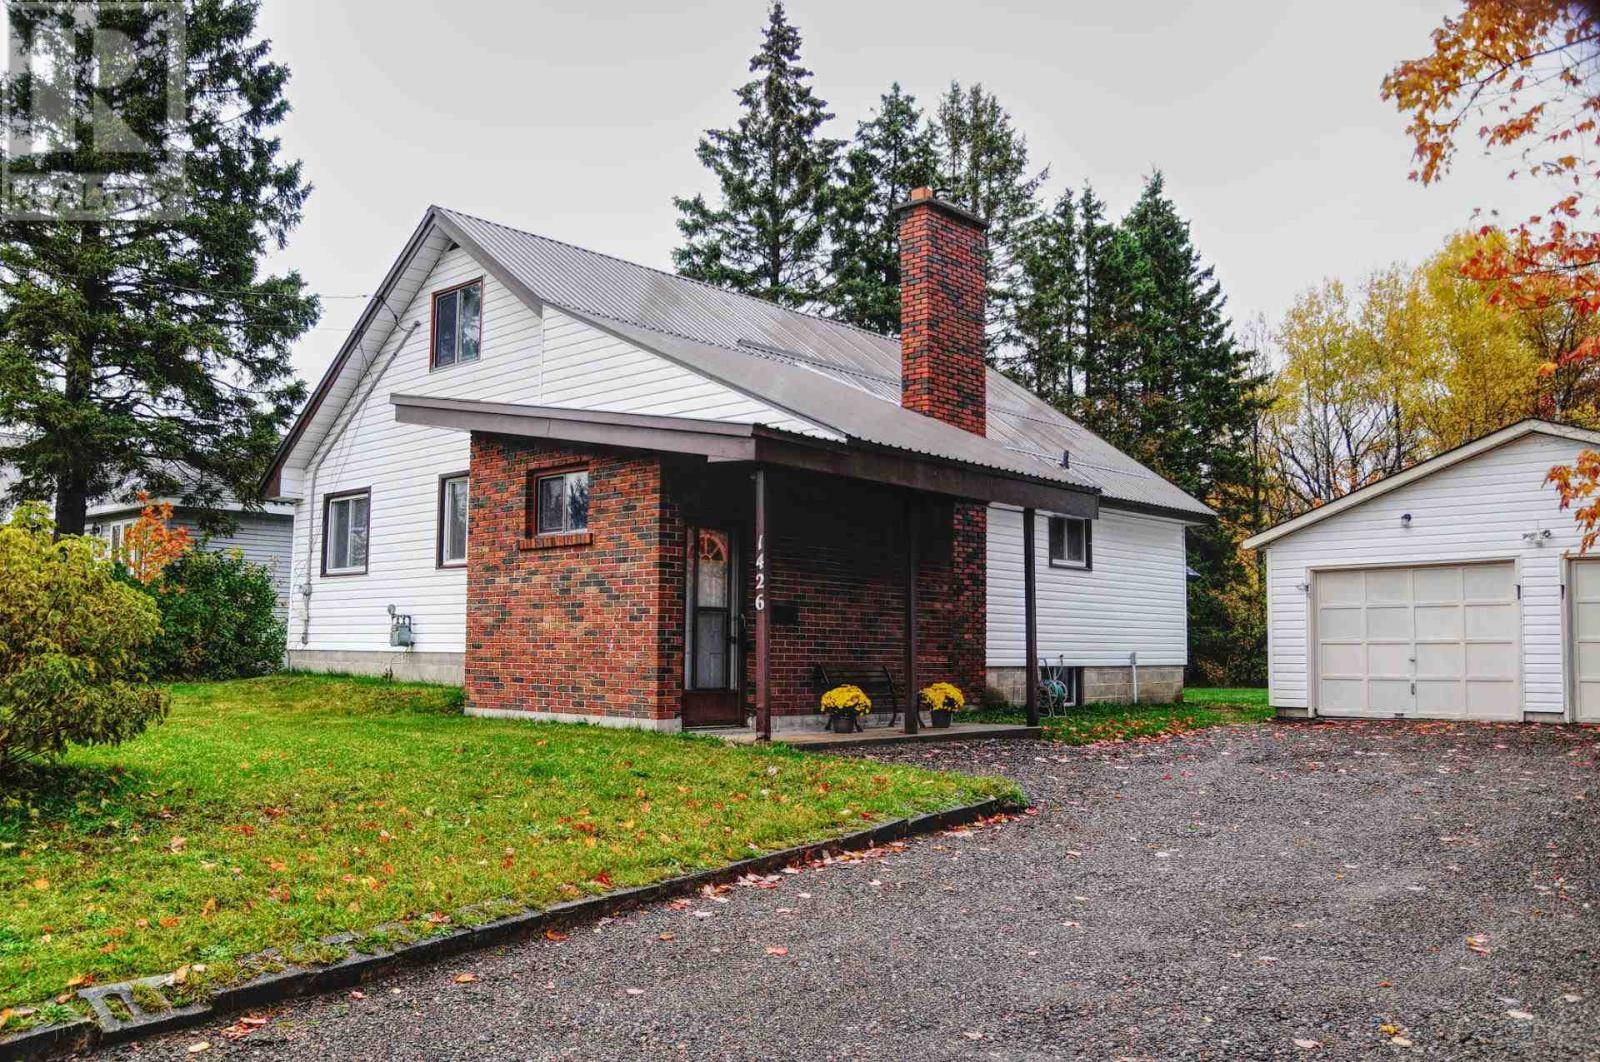 House for sale at 1426 Peoples Rd Sault Ste. Marie Ontario - MLS: SM127205